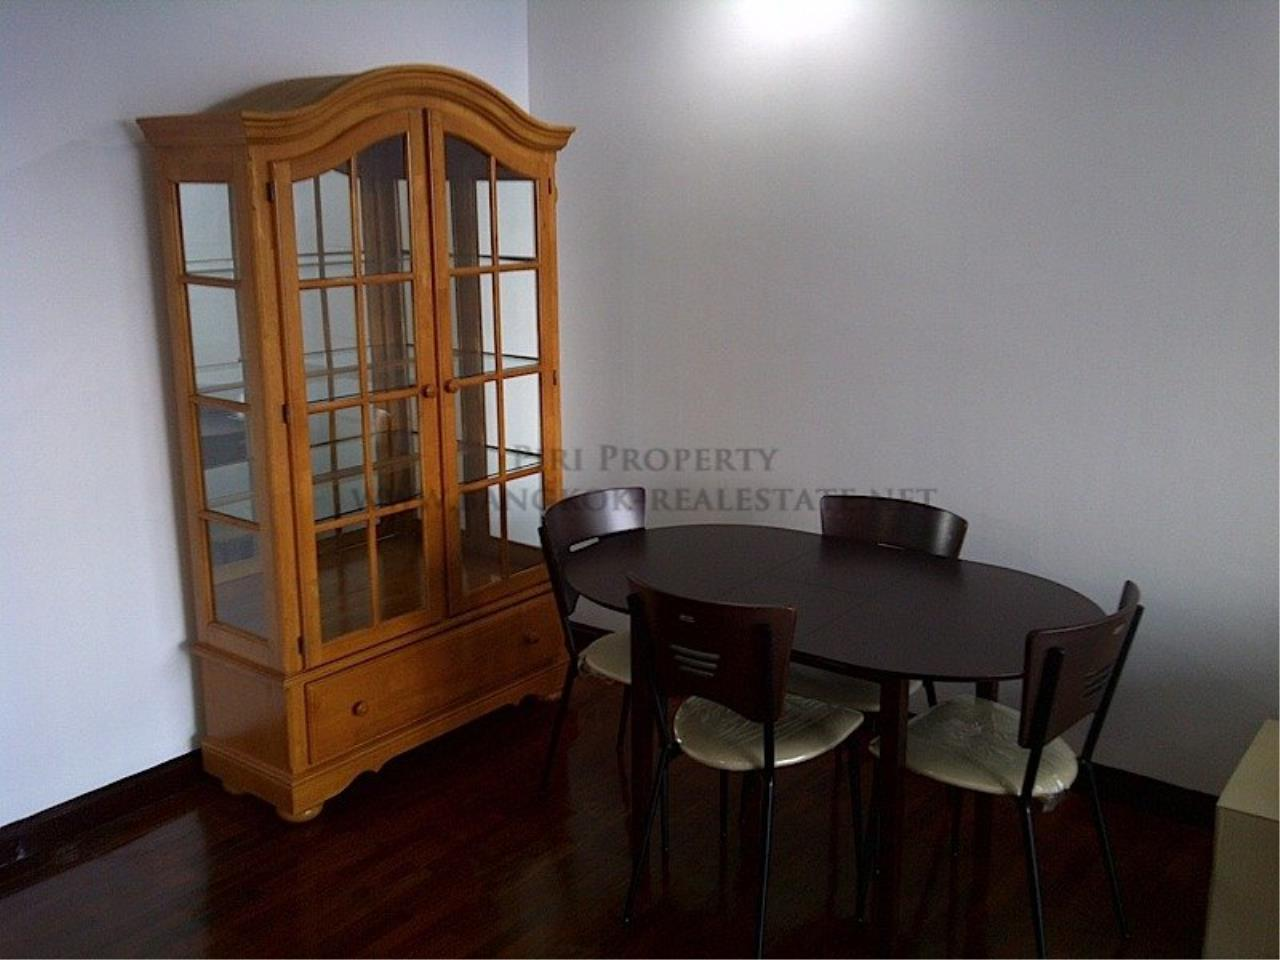 Piri Property Agency's One Bedroom Unit - Monterey Place - Recently Renovated 9